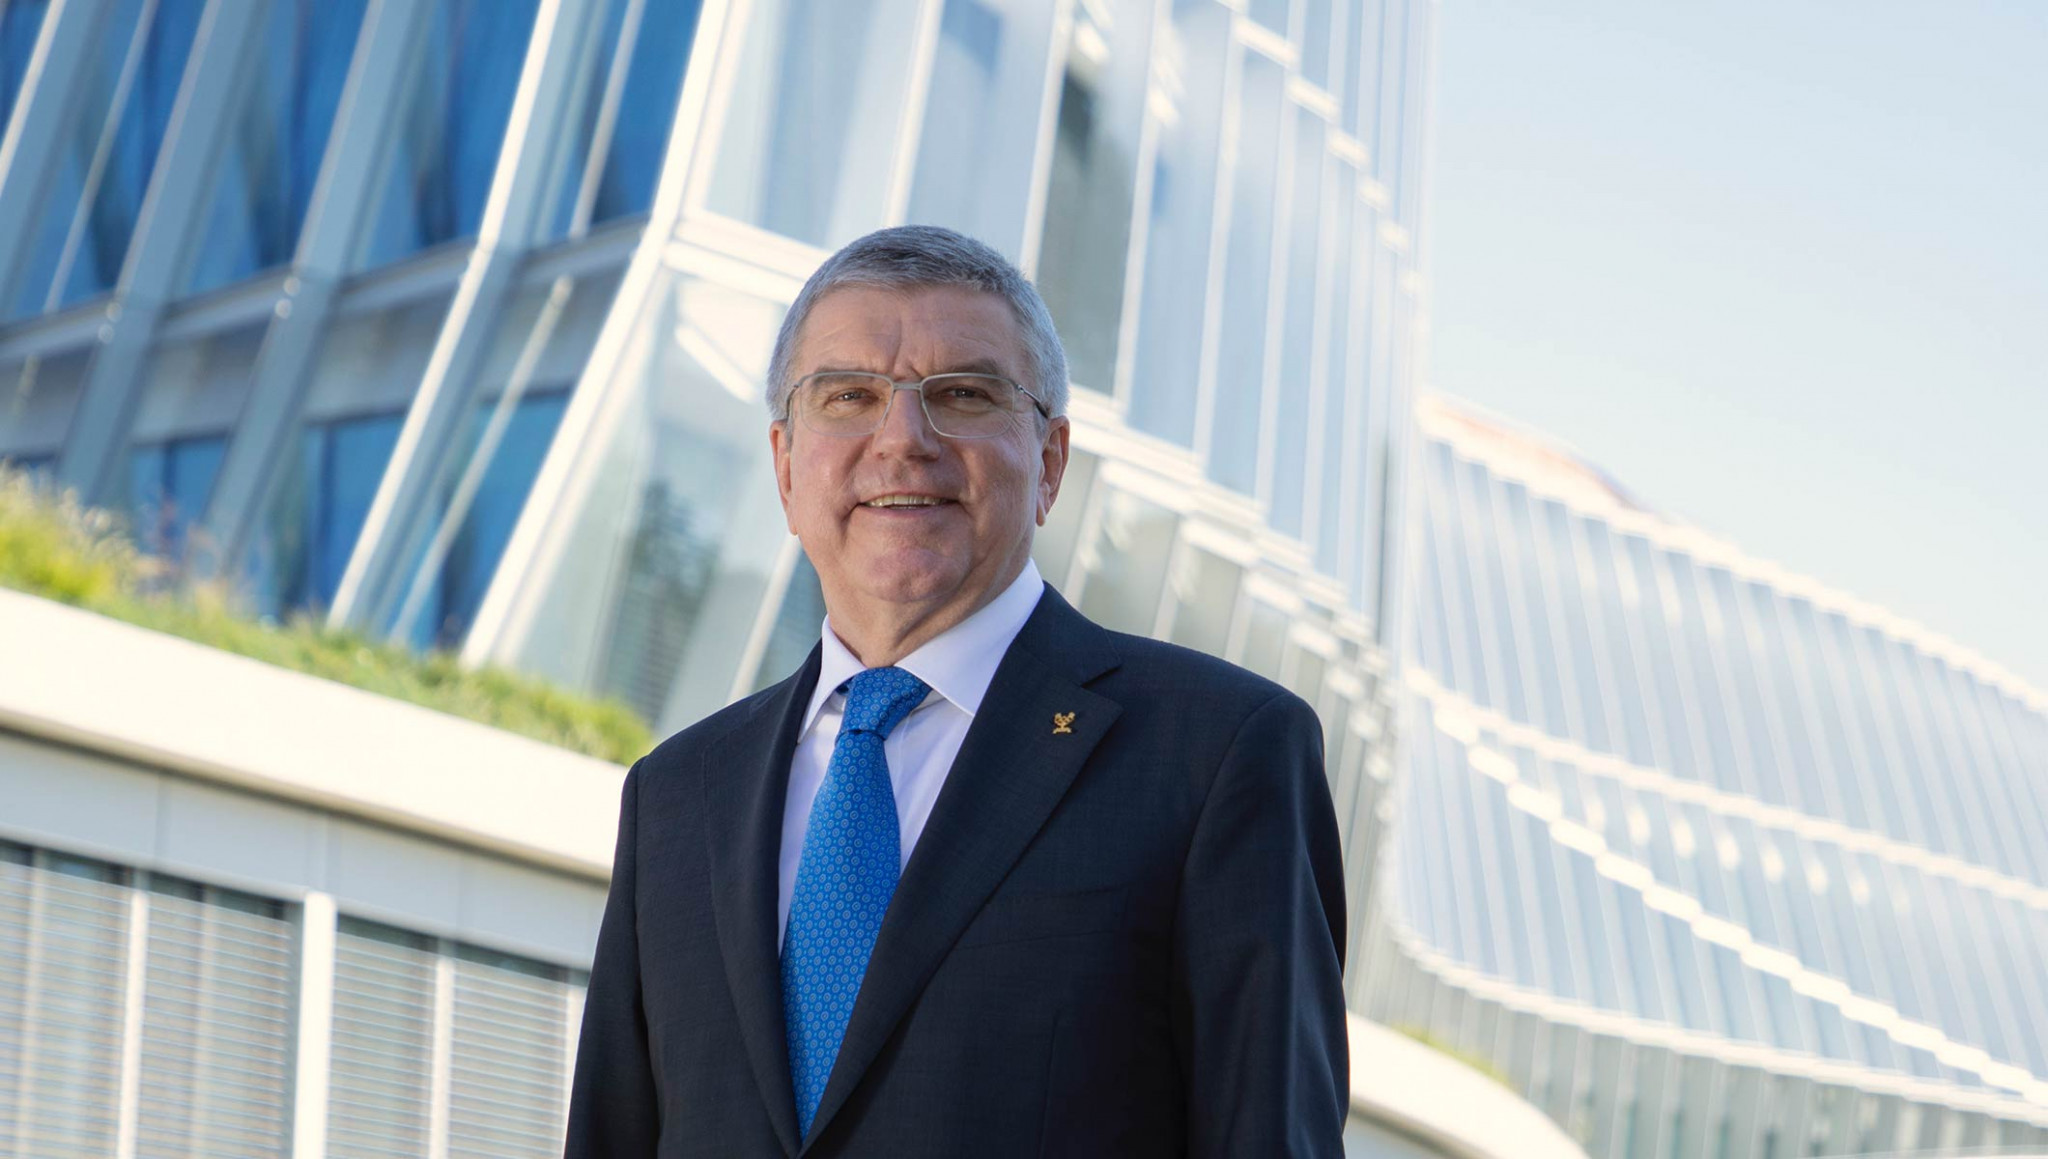 IOC President Thomas Bach has outlined his hopes for 2020 ©IOC